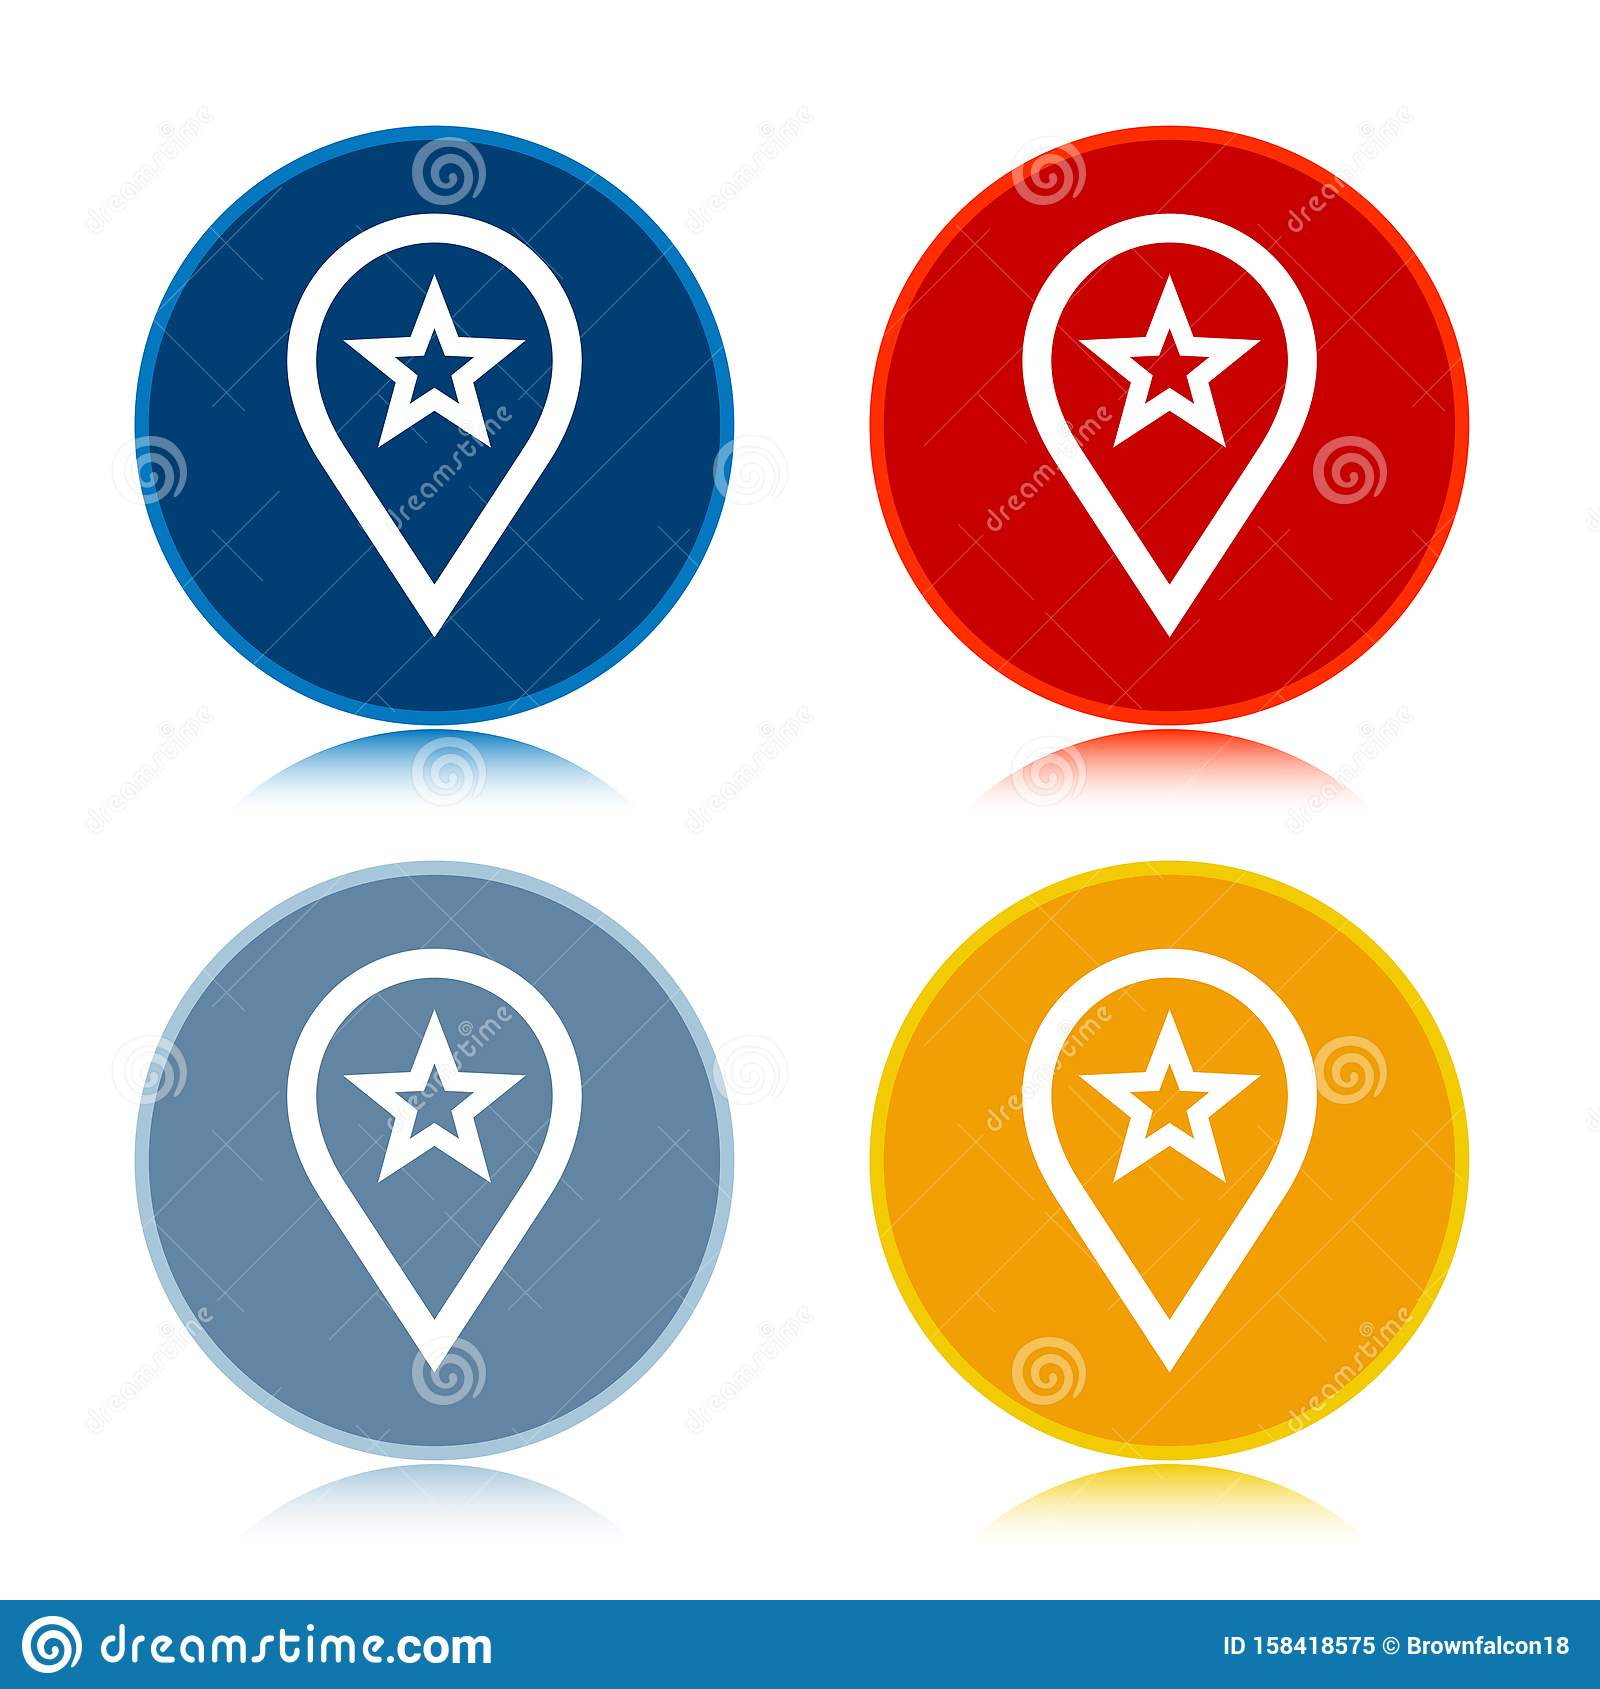 Map pointer star icon trendy flat round buttons set illustration design